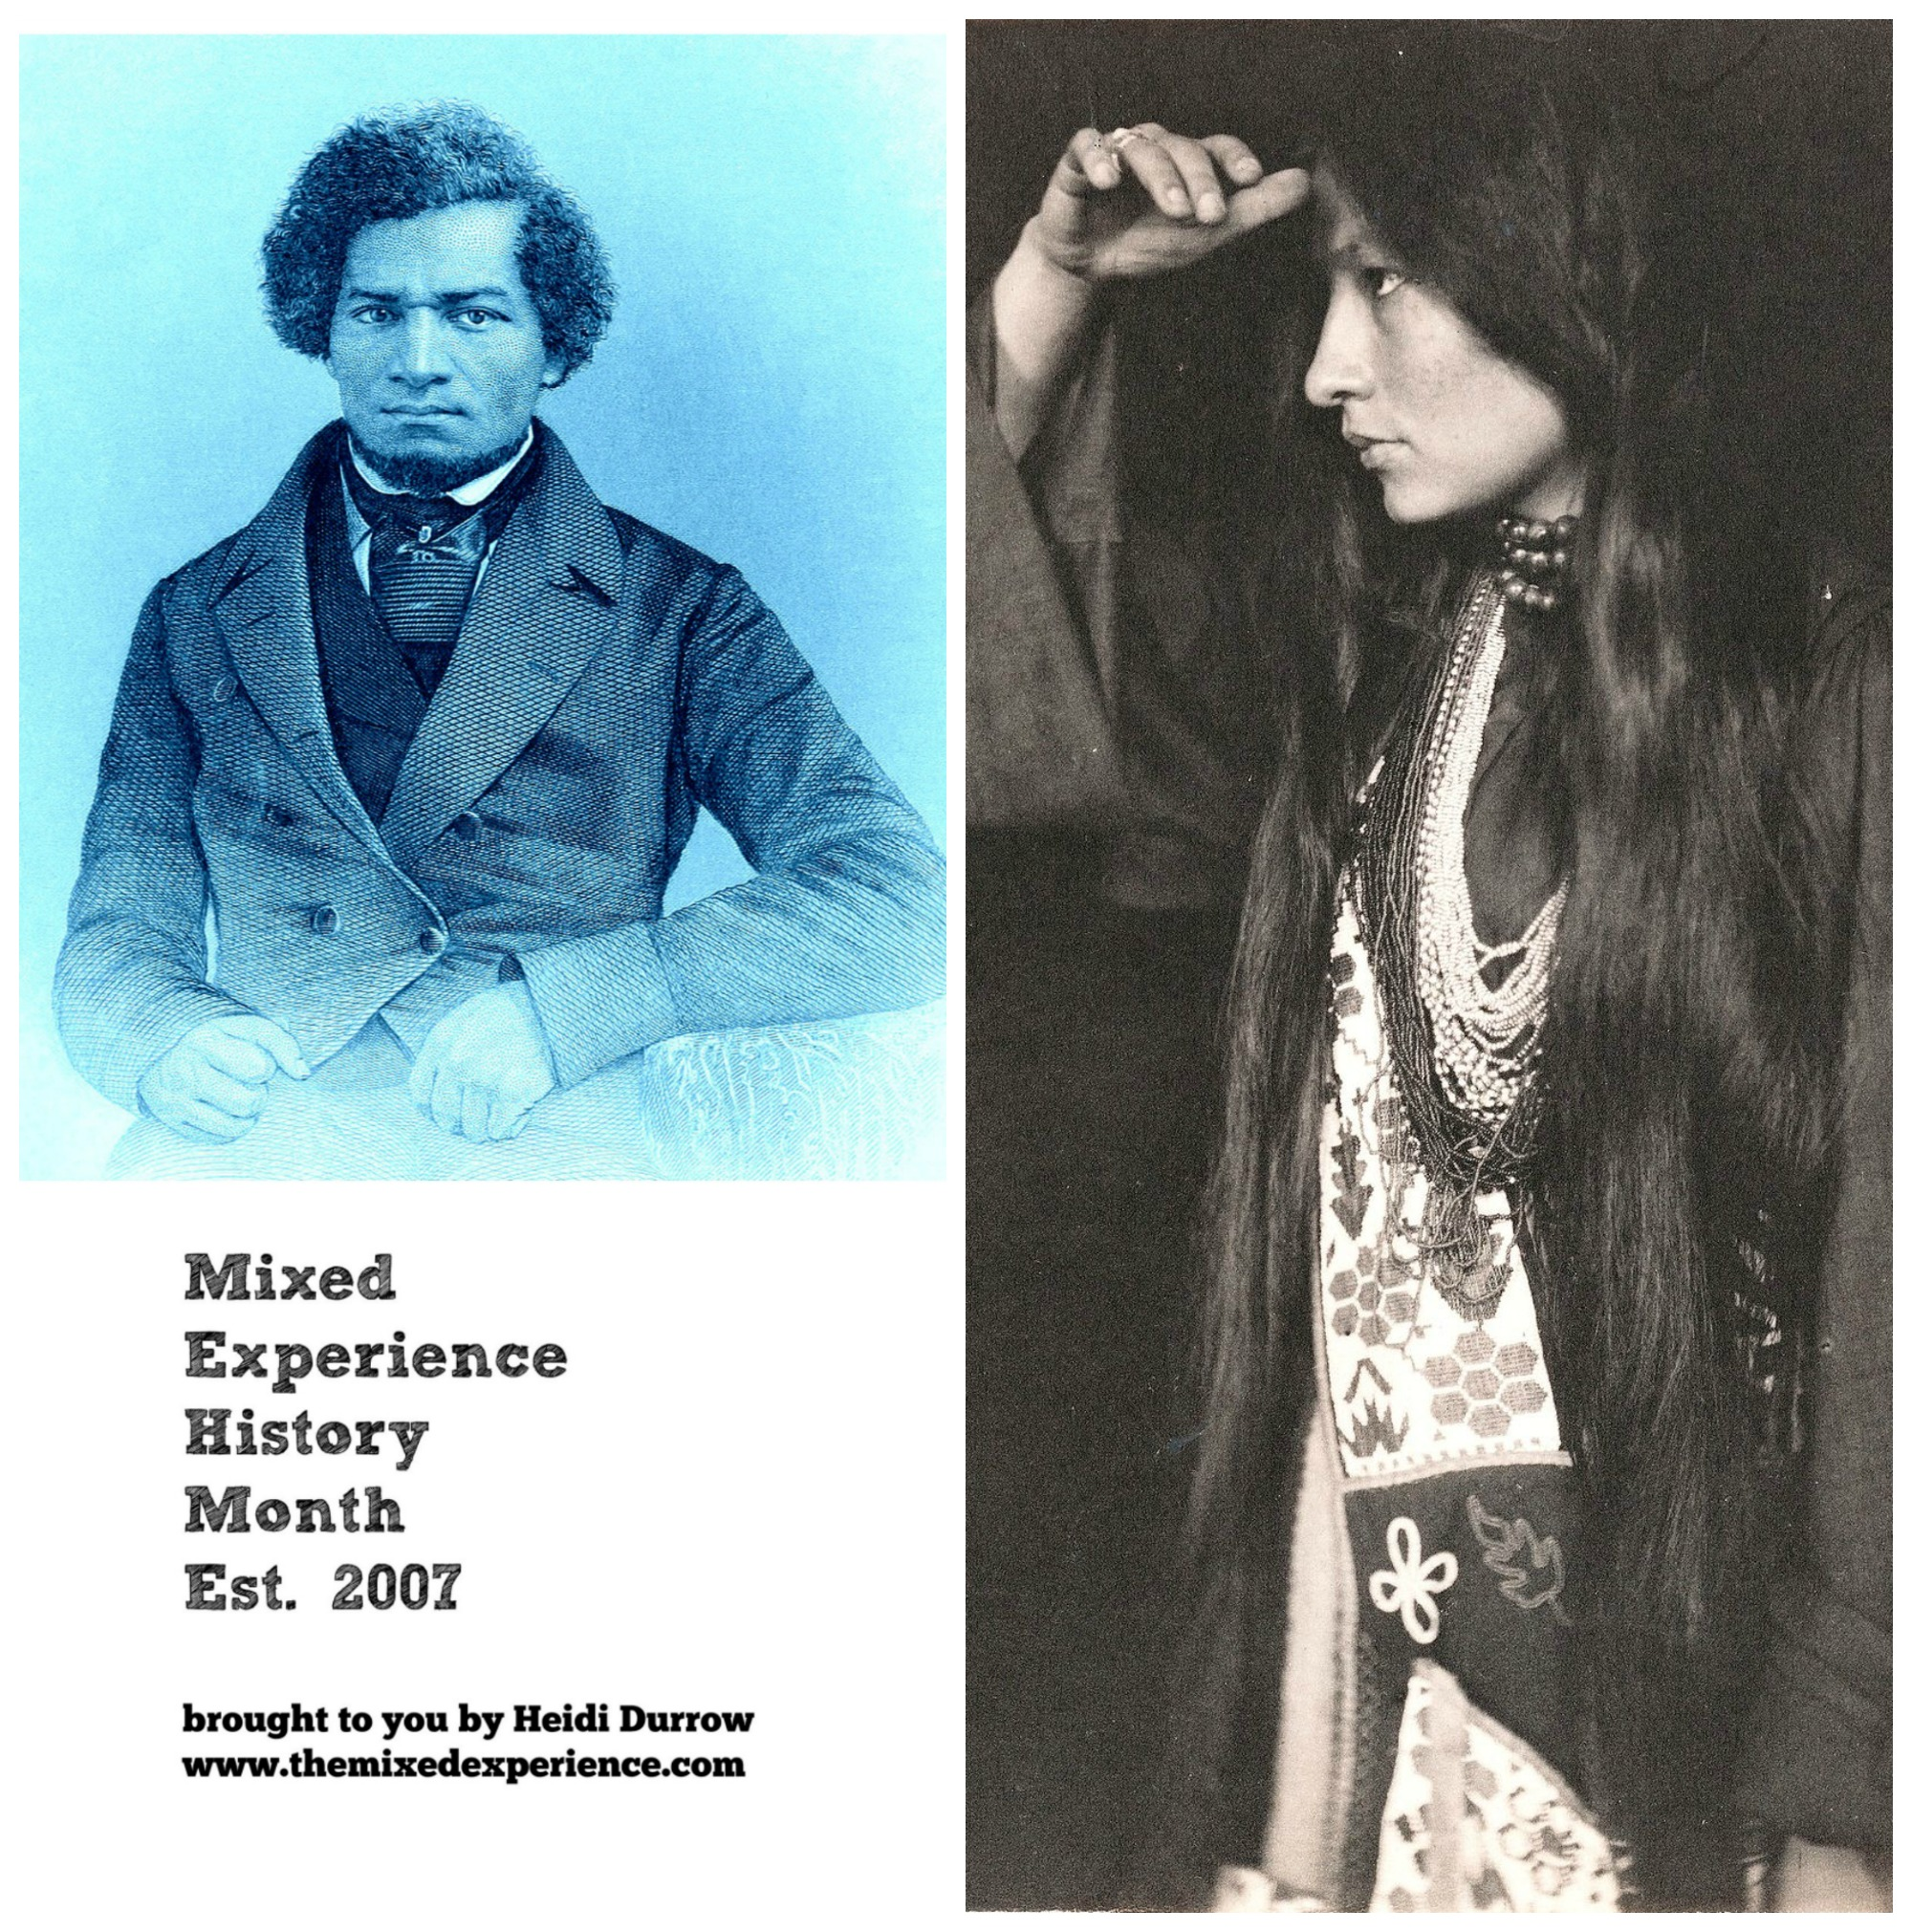 mixed experience history month 2017 gertrude simmons bonnin